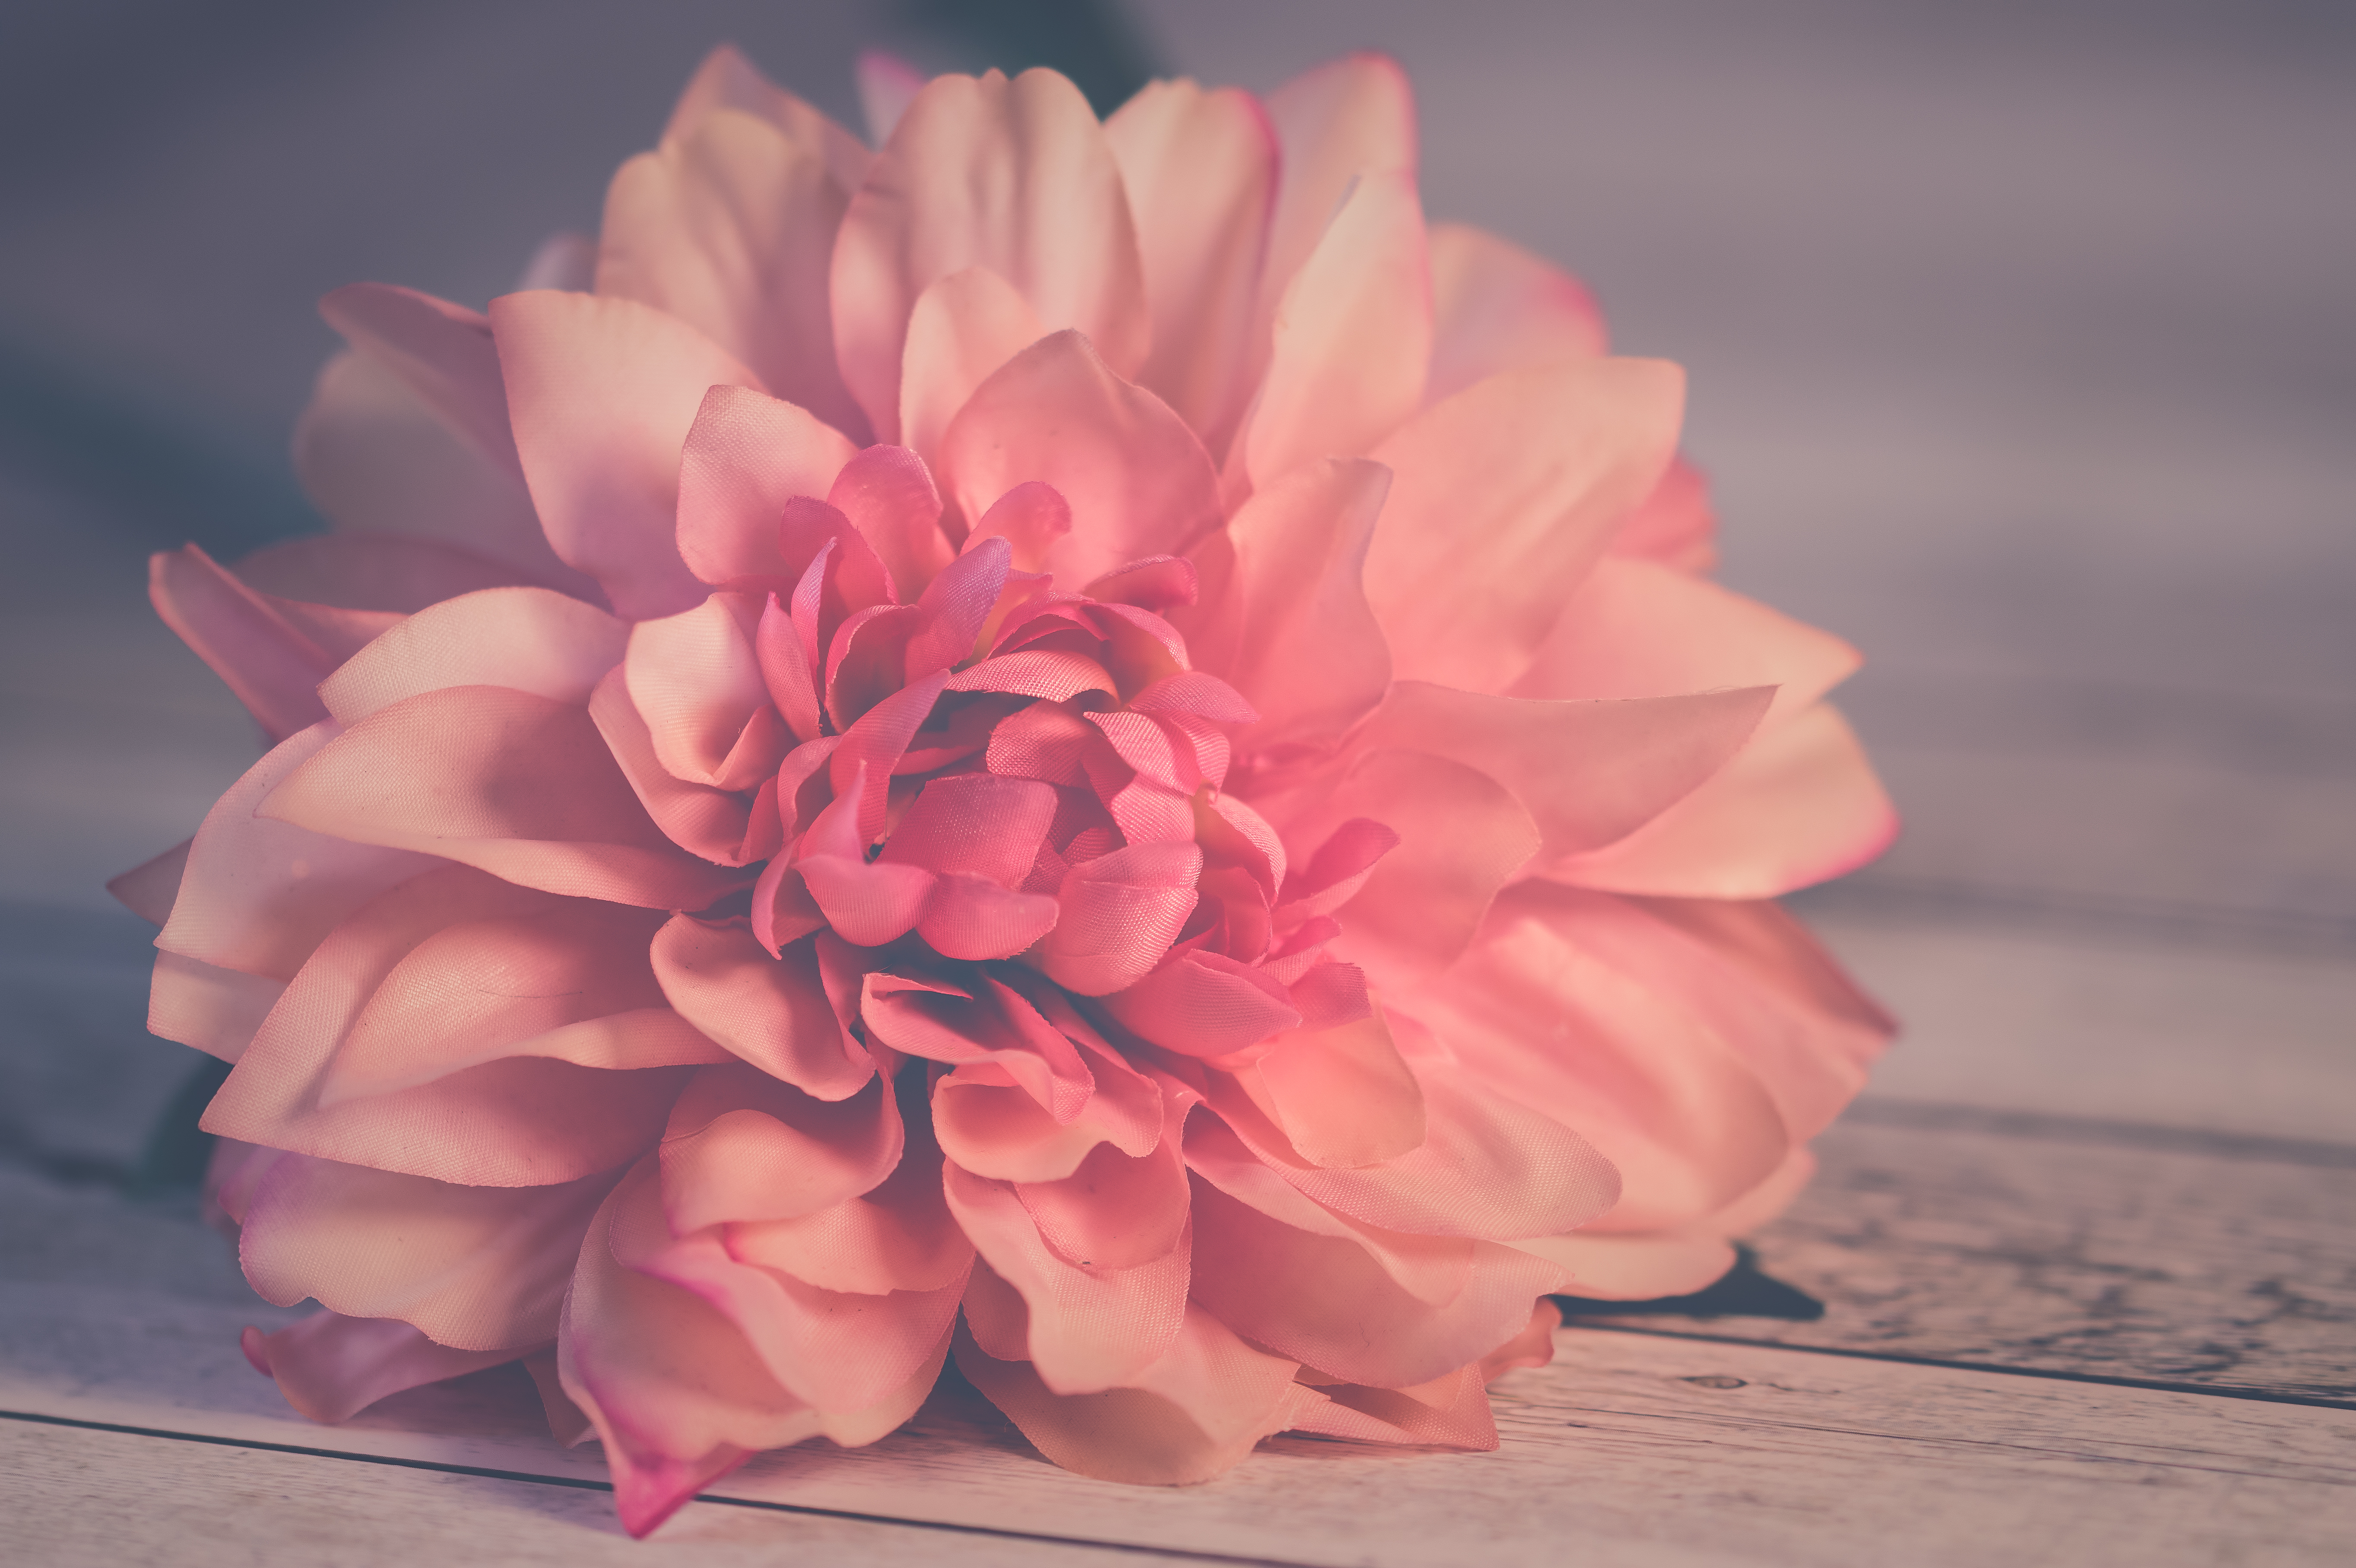 Floral Wallpaper For Iphone 5 1000 Great Flower Background Photos 183 Pexels 183 Free Stock